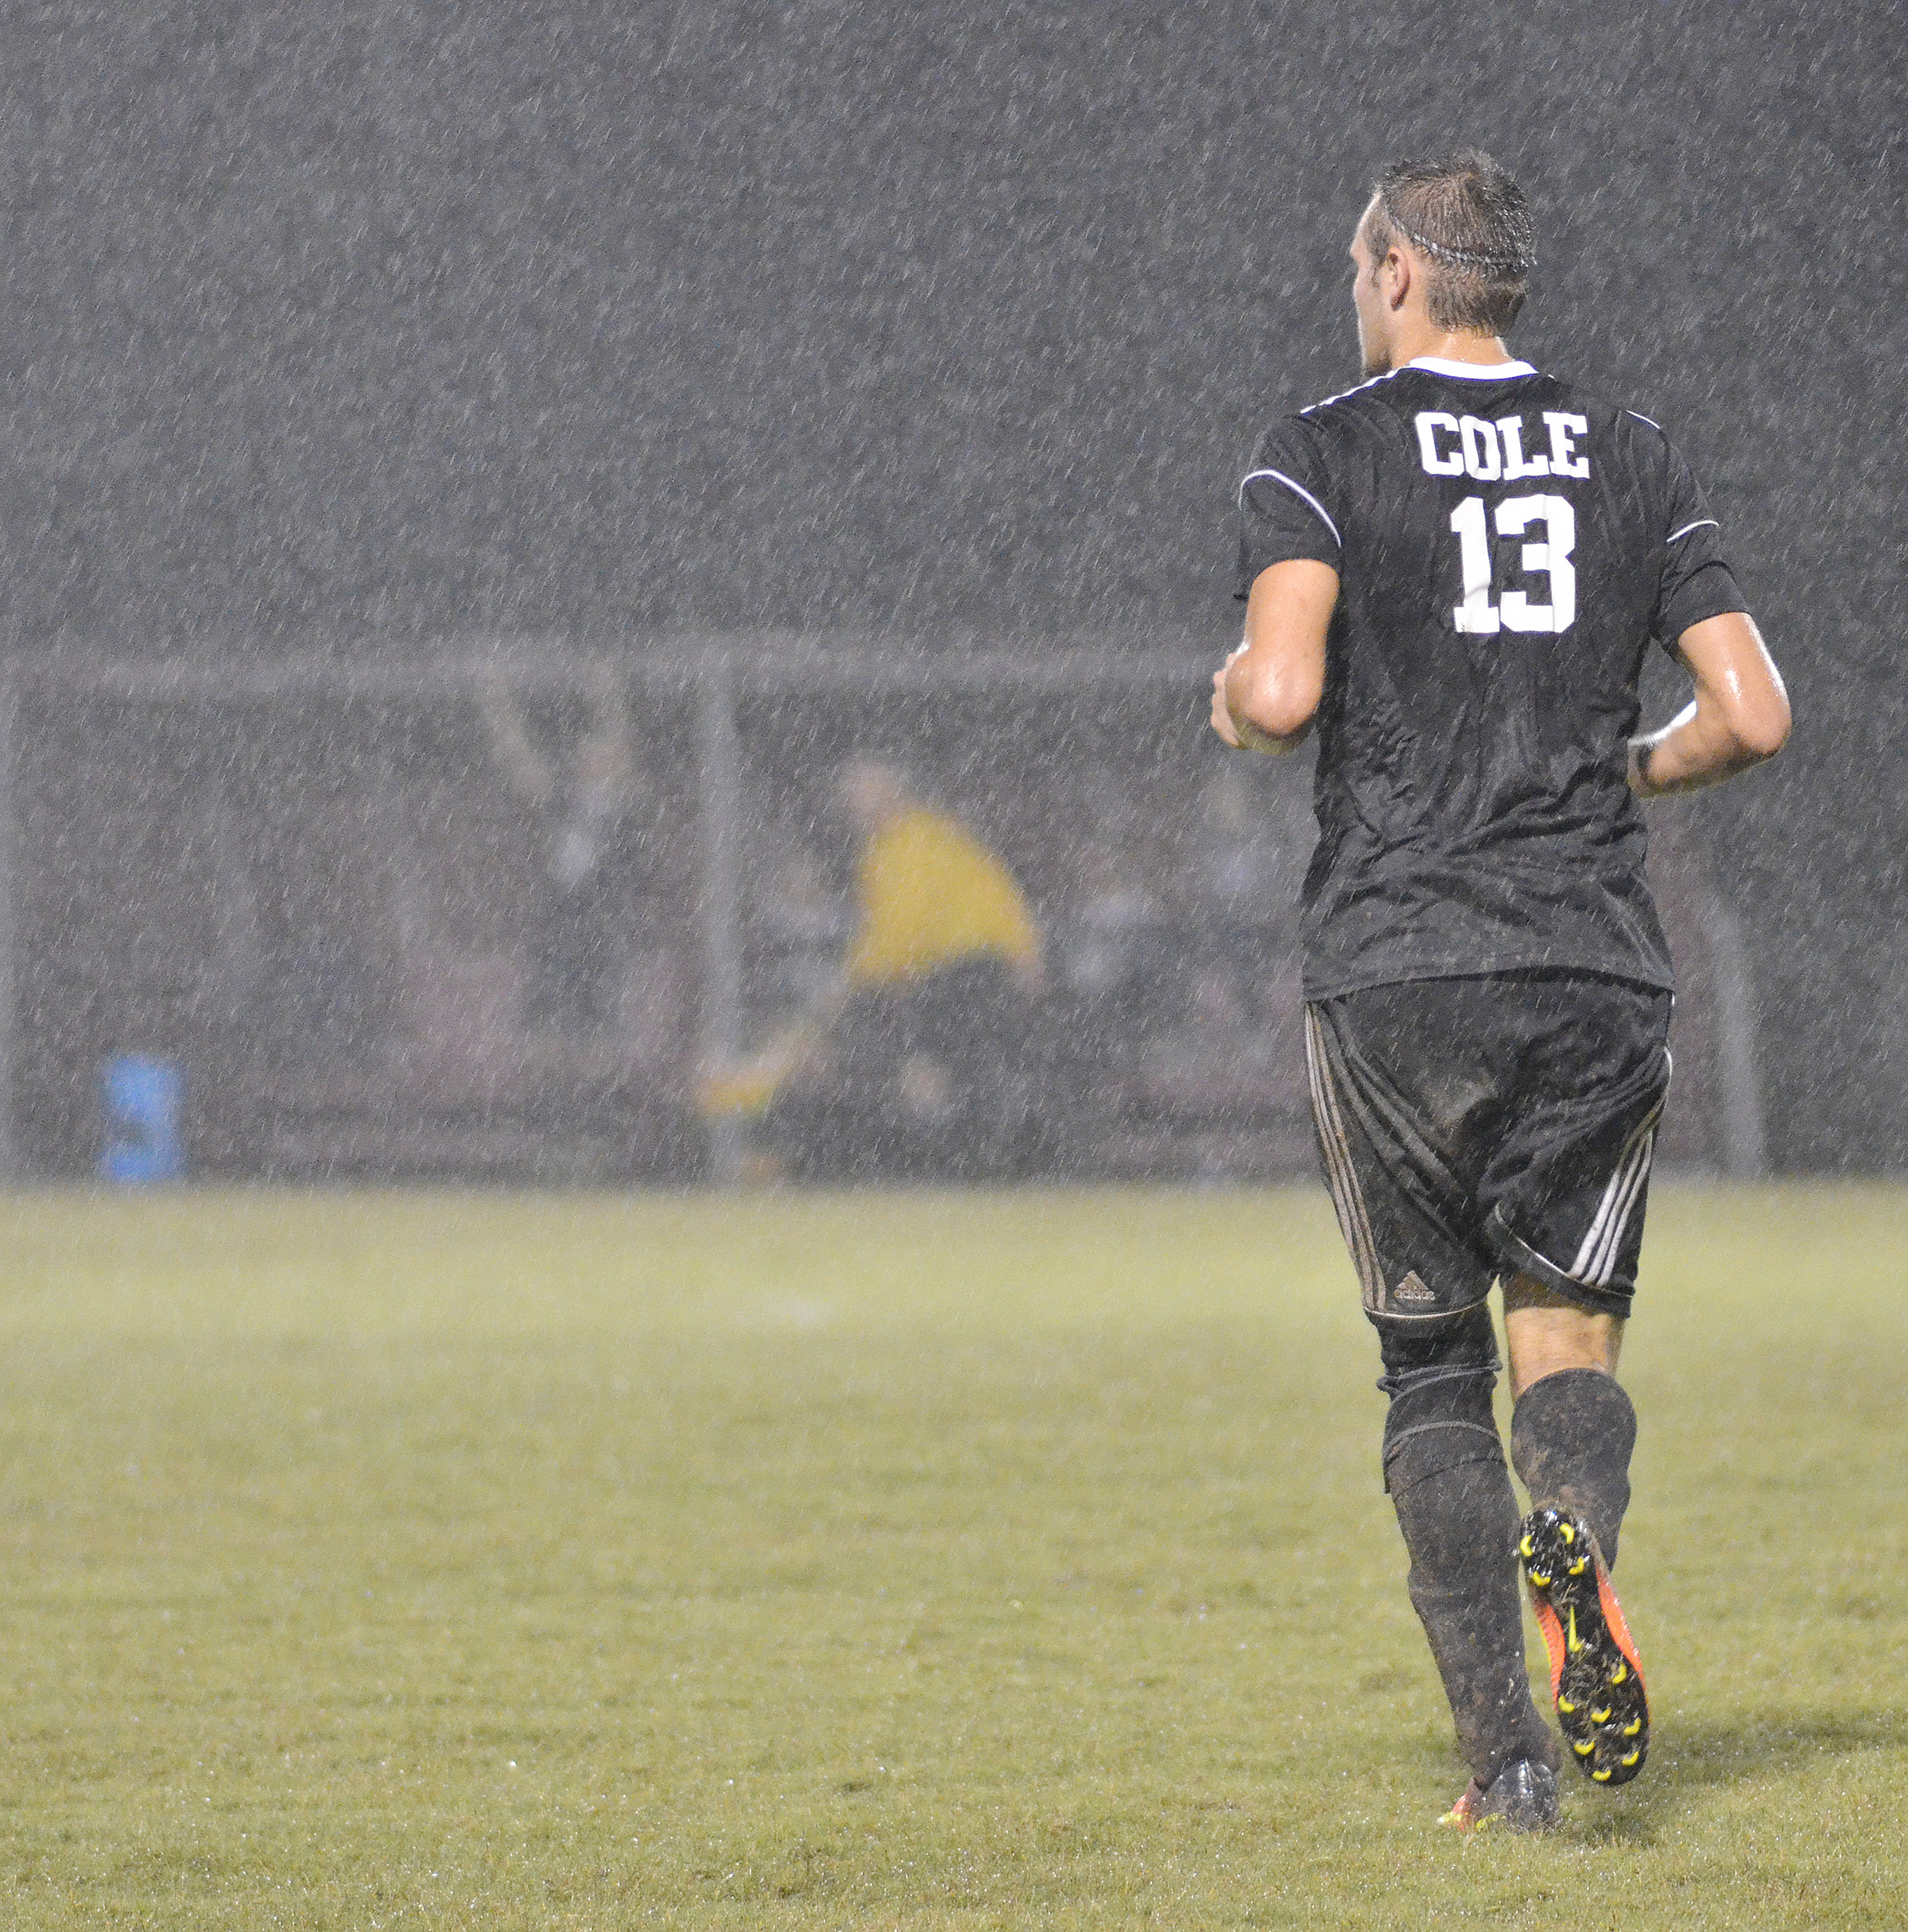 CHS senior Logan Cole runs down the field.